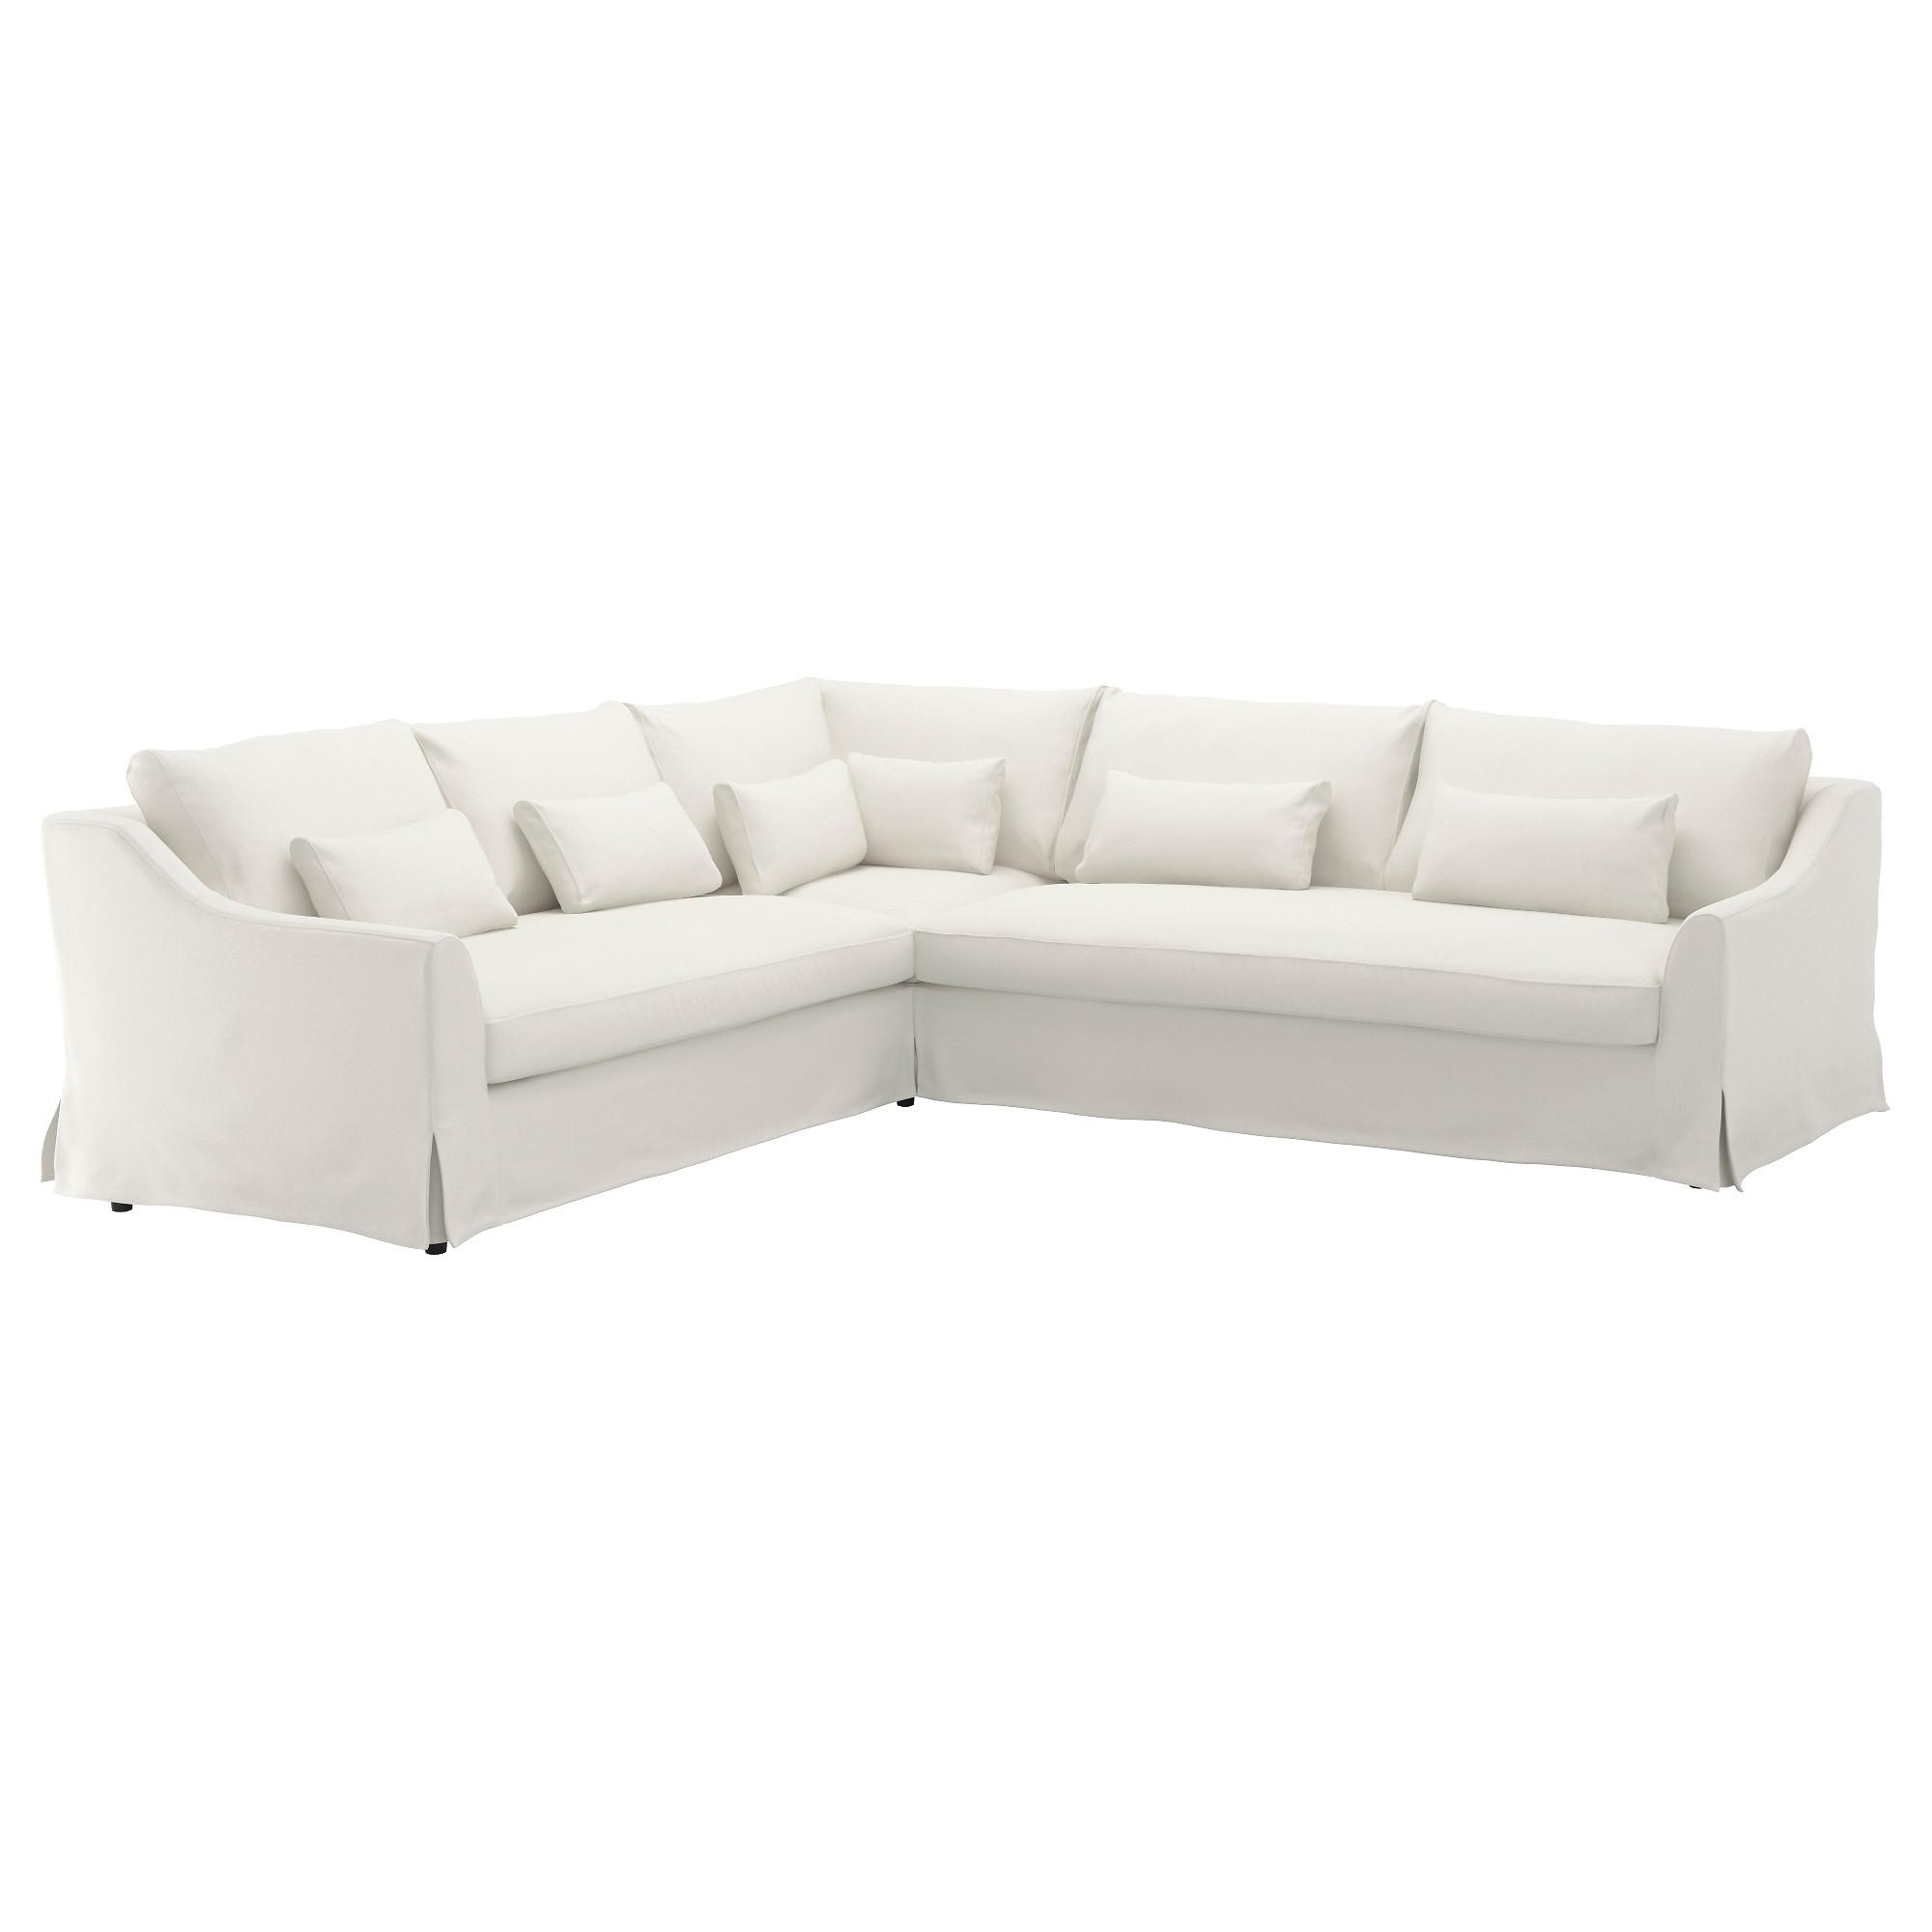 Fabric Sectional Sofas – Ikea Inside 2 Seat Sectional Sofas (View 12 of 15)